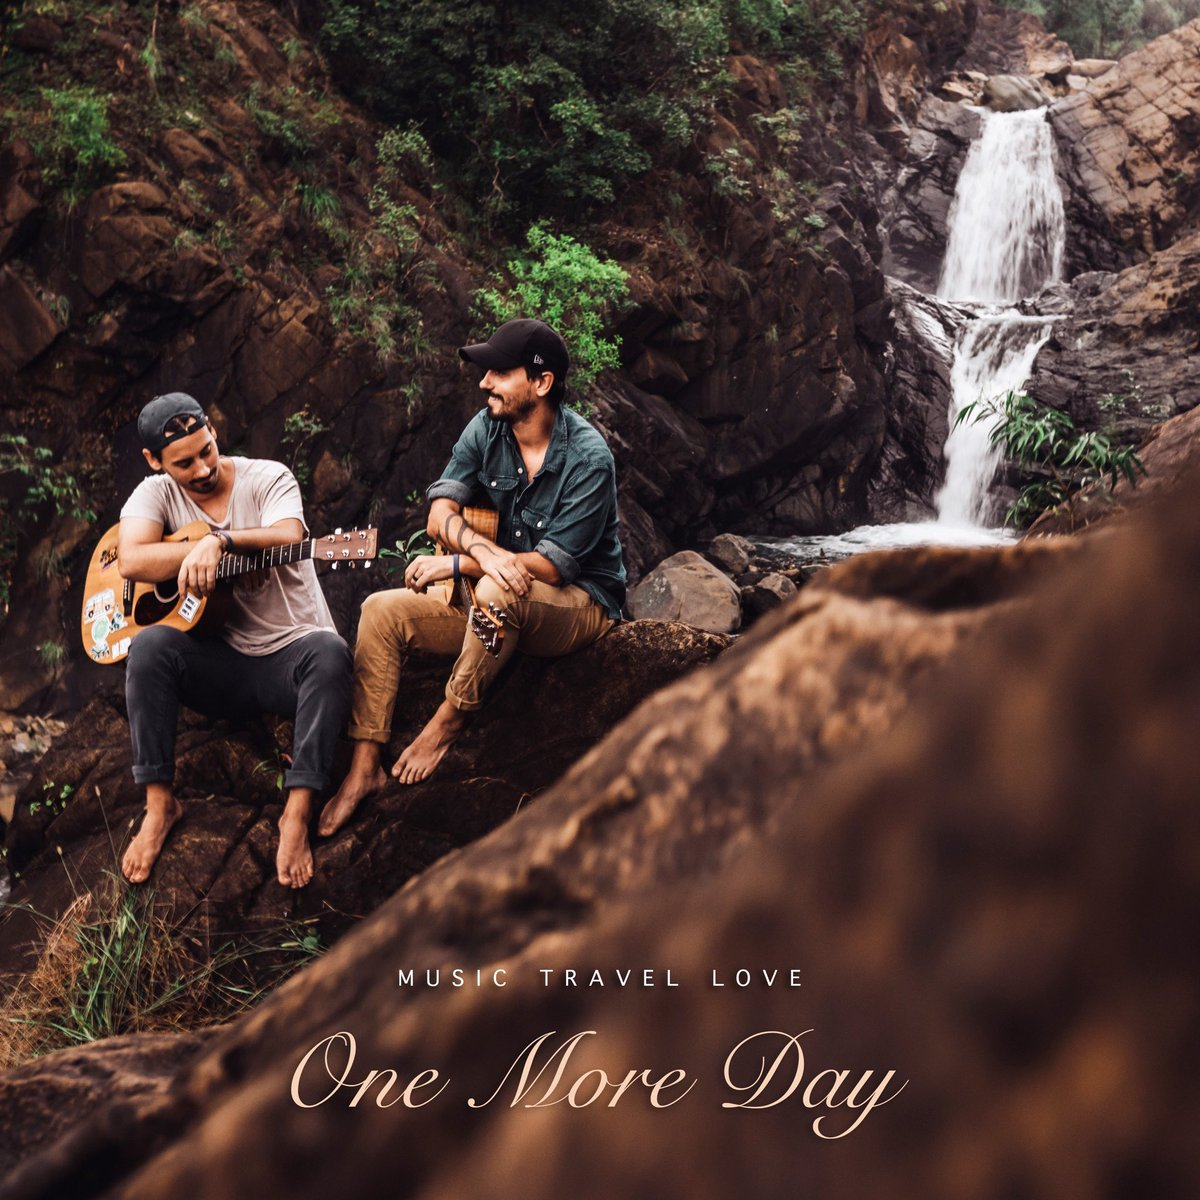 One More Day is out! Had a great time making this video at Tukal Tukal Falls in Botolan Philippines. One of our all time favorites by Diamond Rio, check it out here - https://t.co/S0Iii224ie https://t.co/LOCIyL8wdE